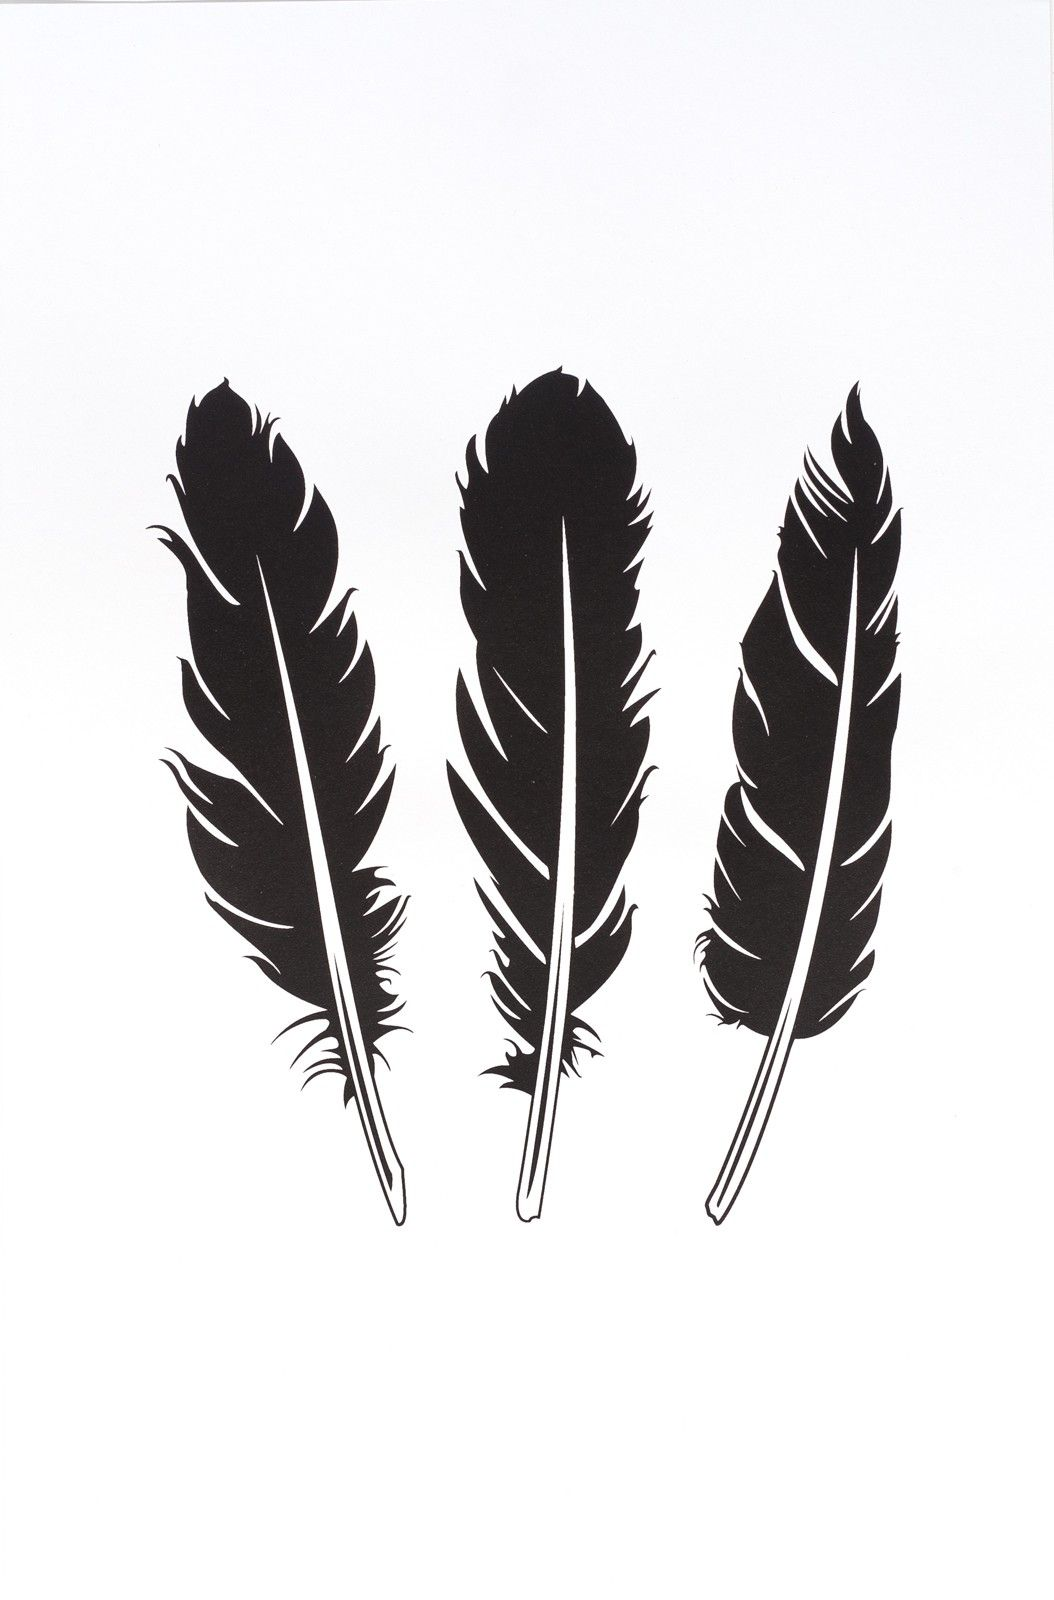 Lucrative image with printable feathers